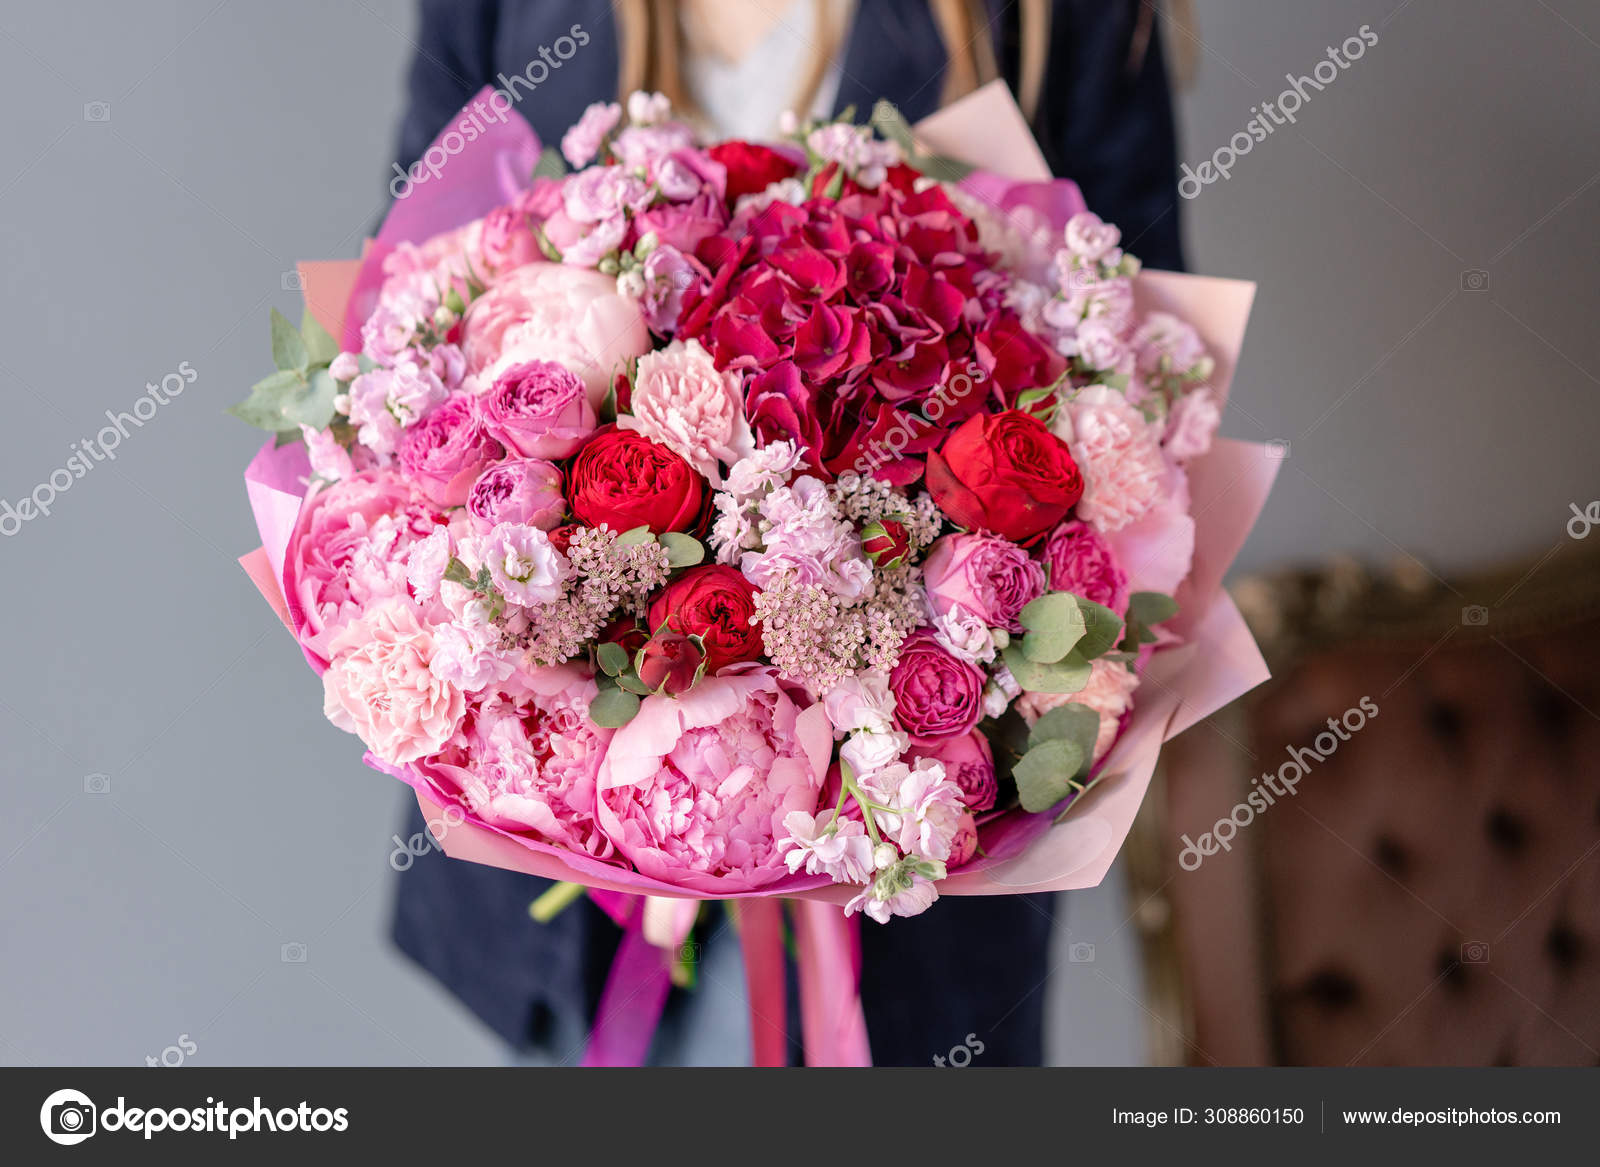 Pink Peonies And Red Hydrangea Beautiful Bouquet Of Mixed Flowers In Woman Hand Floral Shop Concept Handsome Fresh Bouquet Flowers Delivery Red And Pink Color Stock Photo C Malkovkosta 308860150